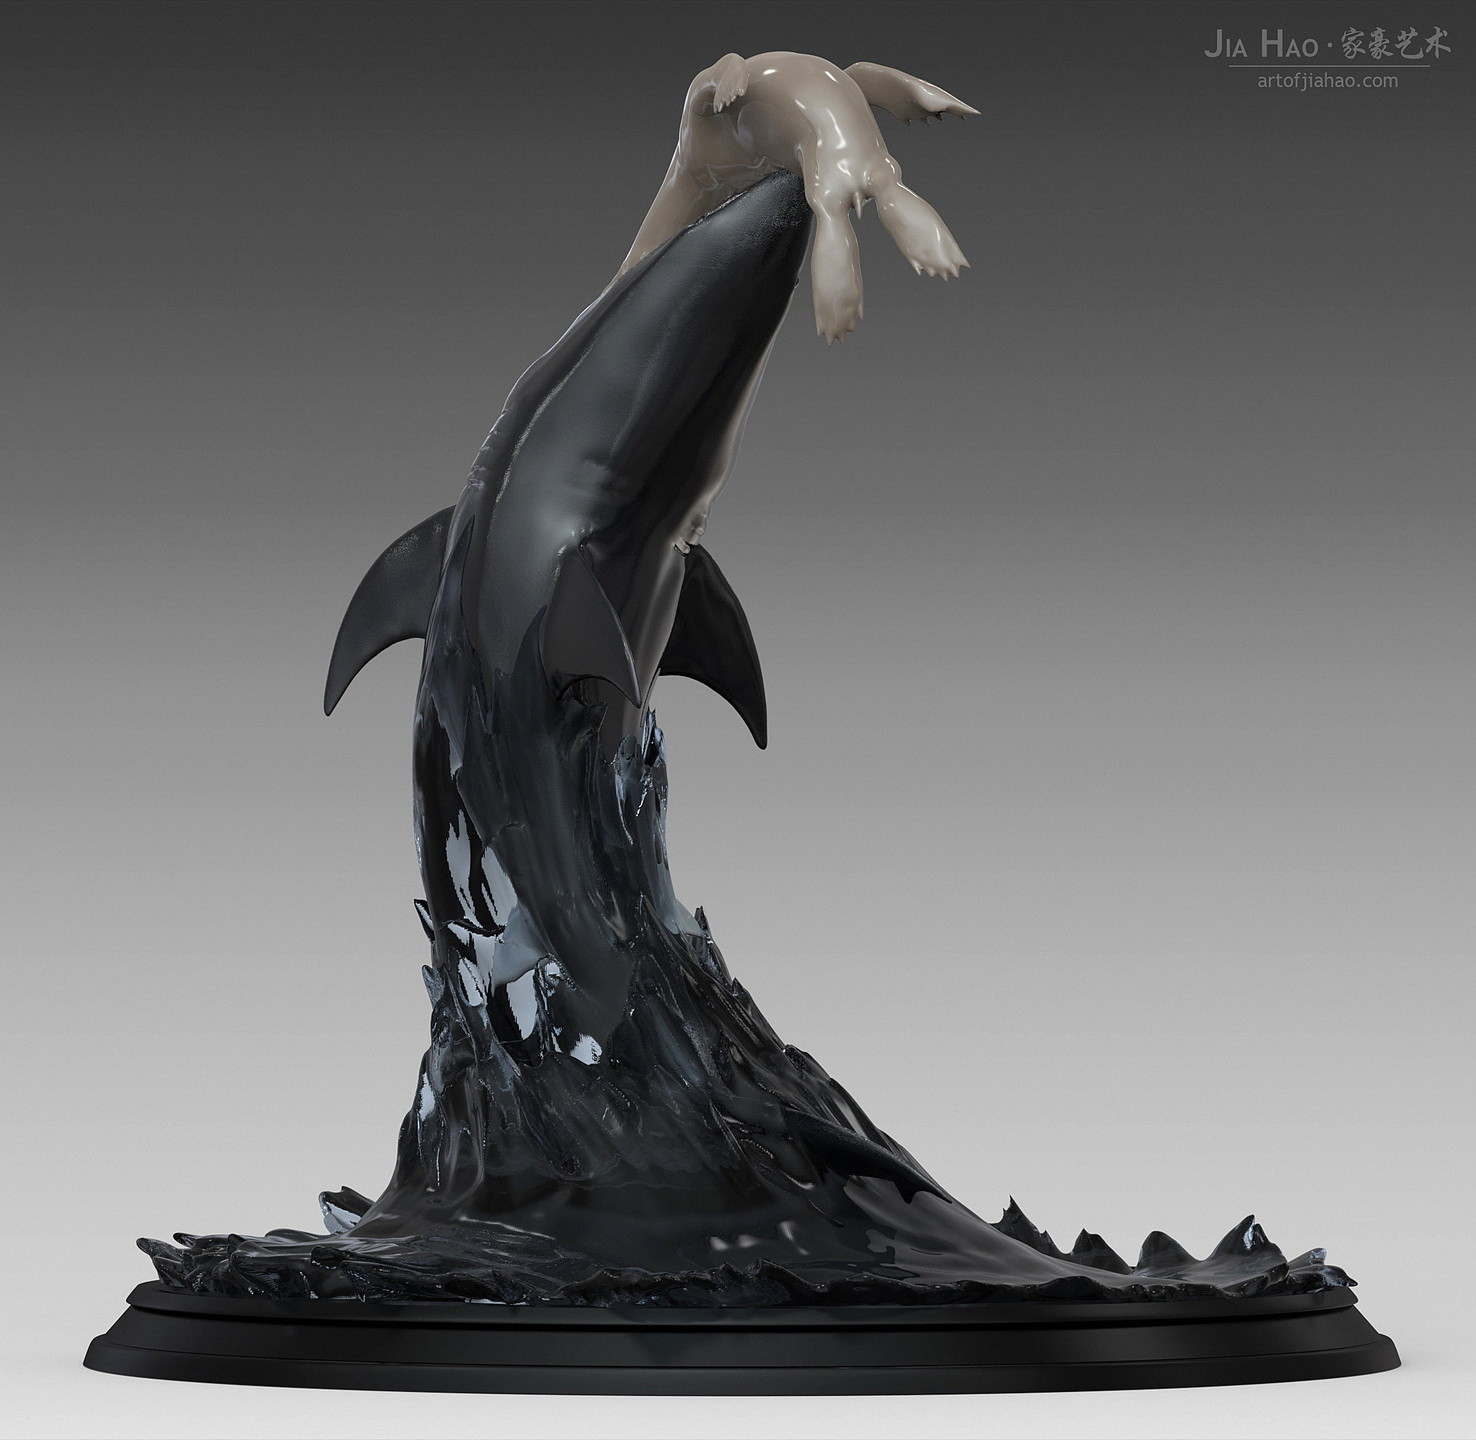 Jia hao greatwhiteshark digitalsculpture 03